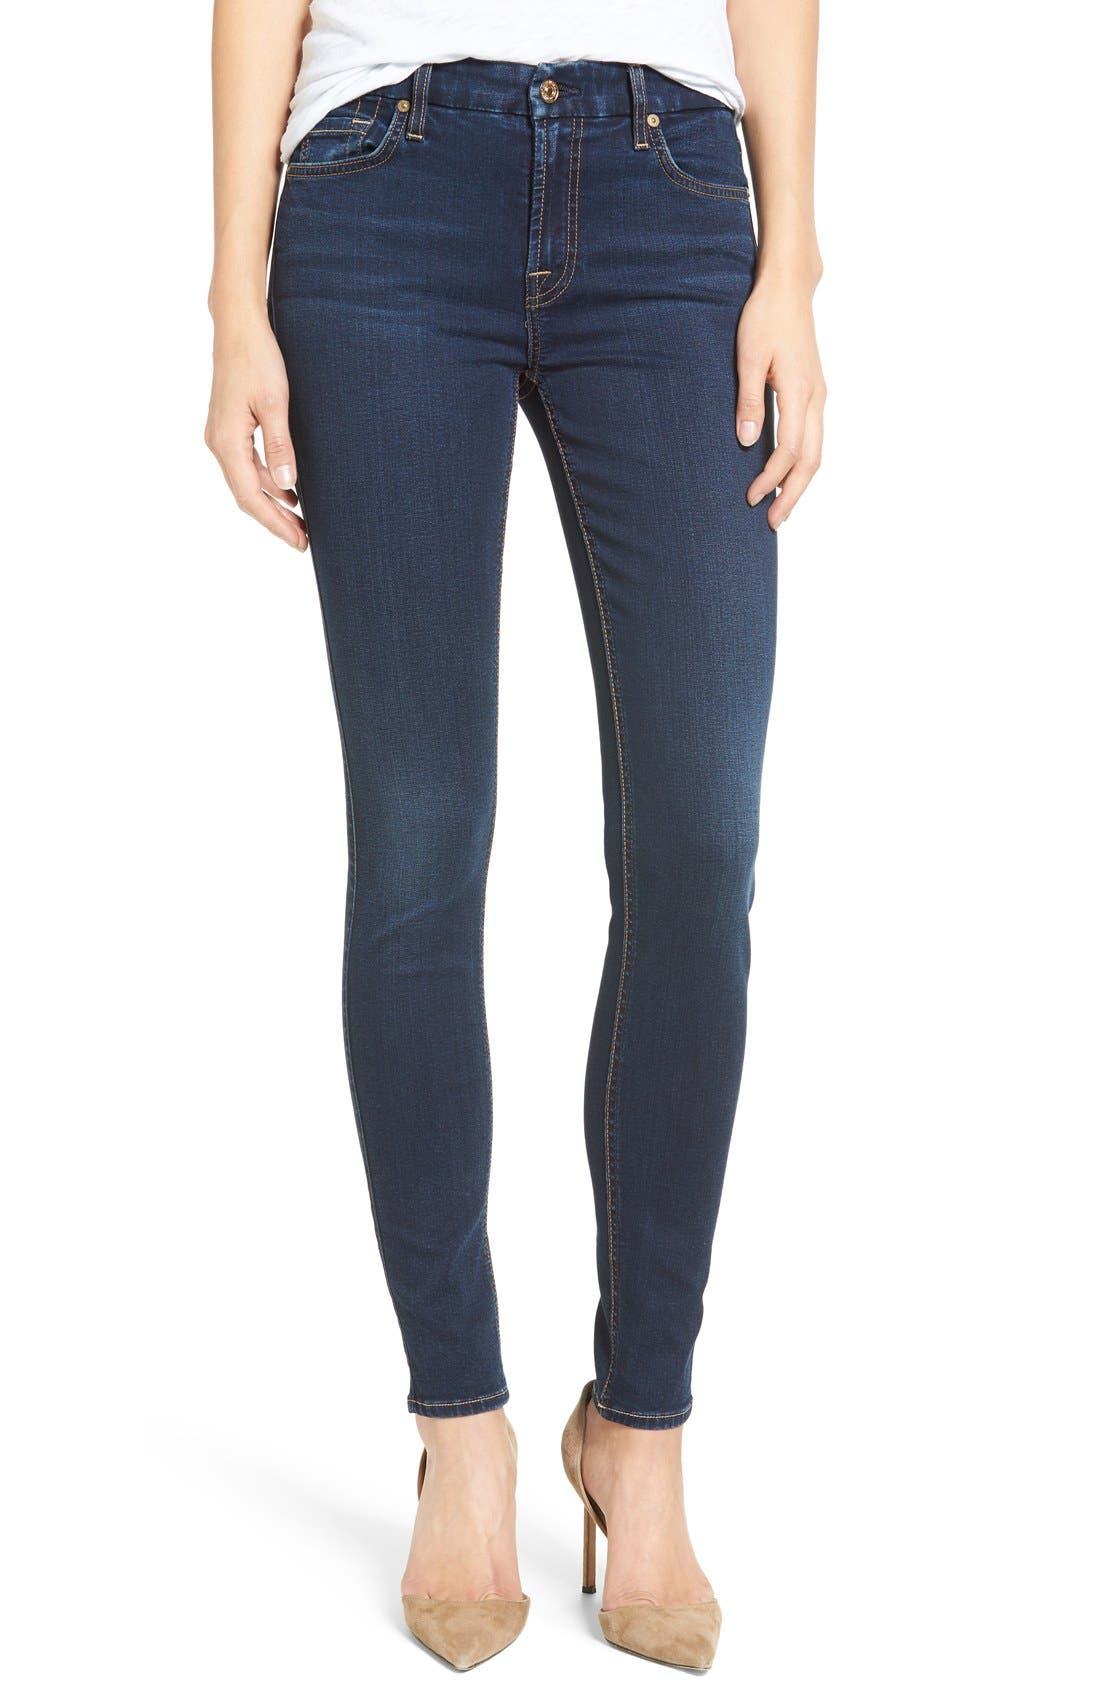 b(air) Skinny Jeans,                             Main thumbnail 1, color,                             Bair Tranquil Blue